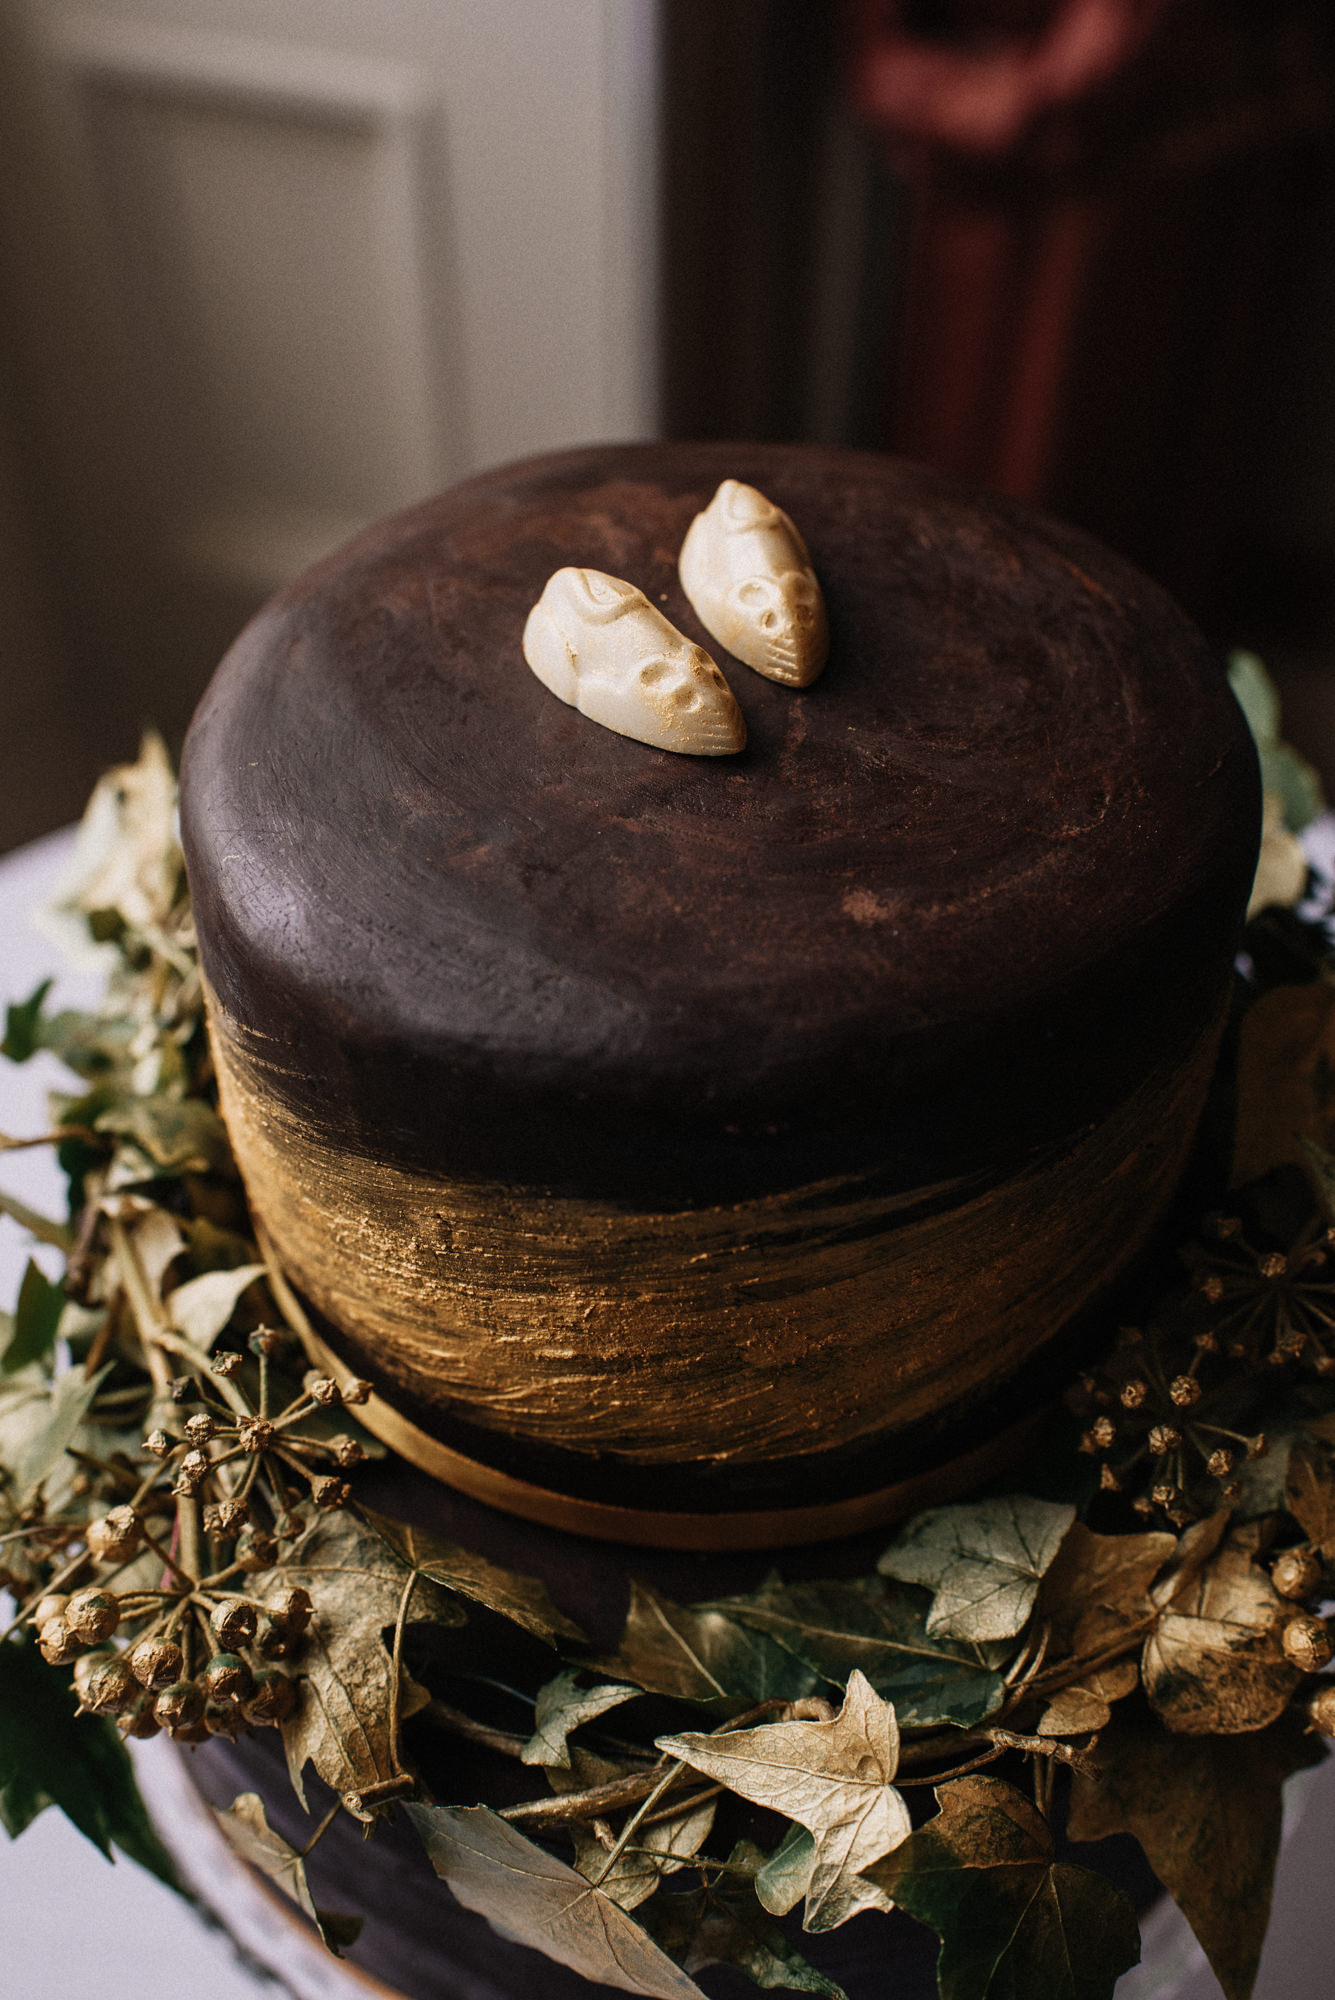 Christmas gold chocolate wedding cake - An Art Deco-Inspired, Knitted Silk Gown For A Festive + Sustainable Country House Wedding